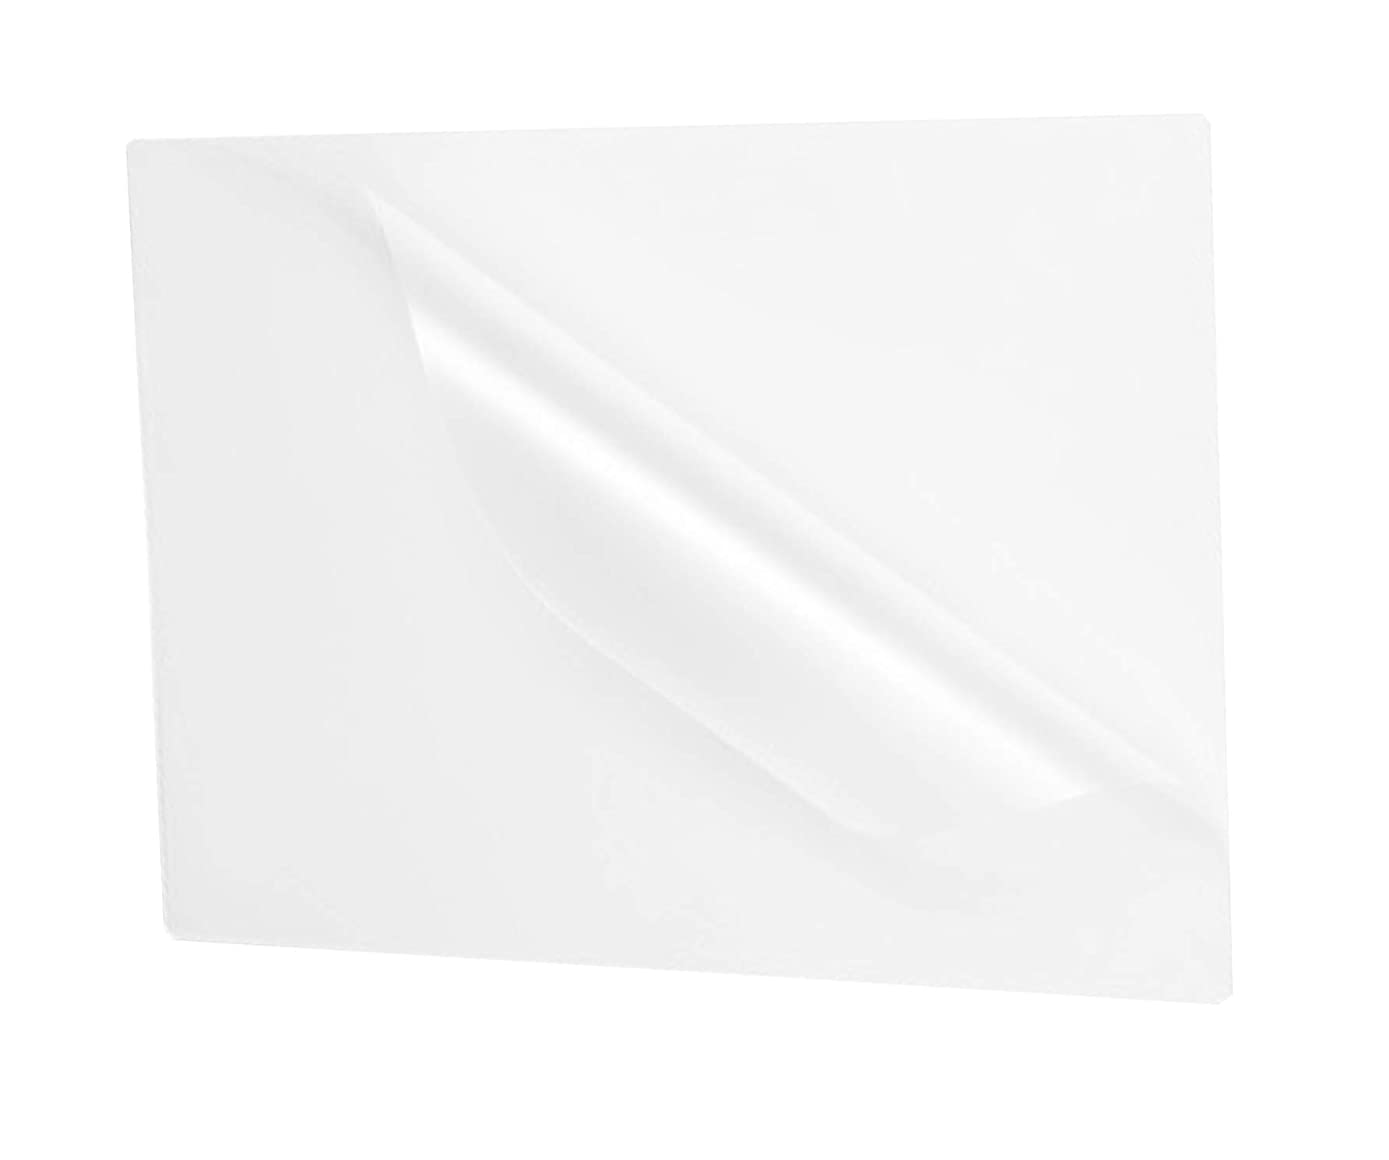 File Card Laminating Pouches 7 Mil 3.5 x 5.5 [box of 500] Clear Hot